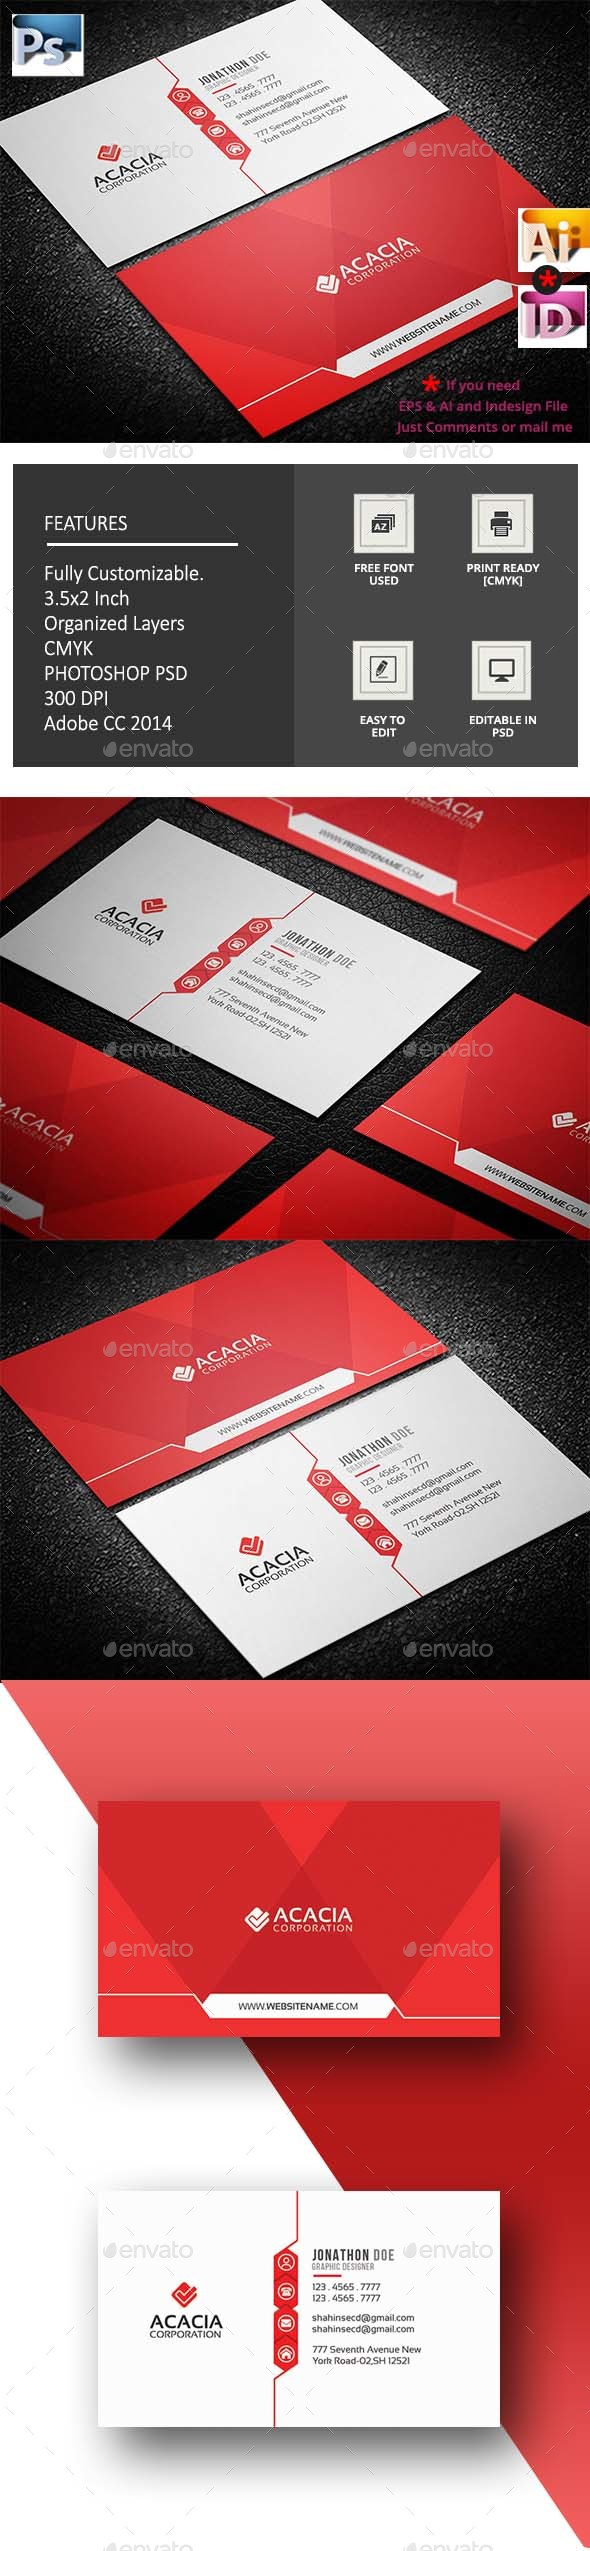 Nrm Business Card - Corporate Business Cards